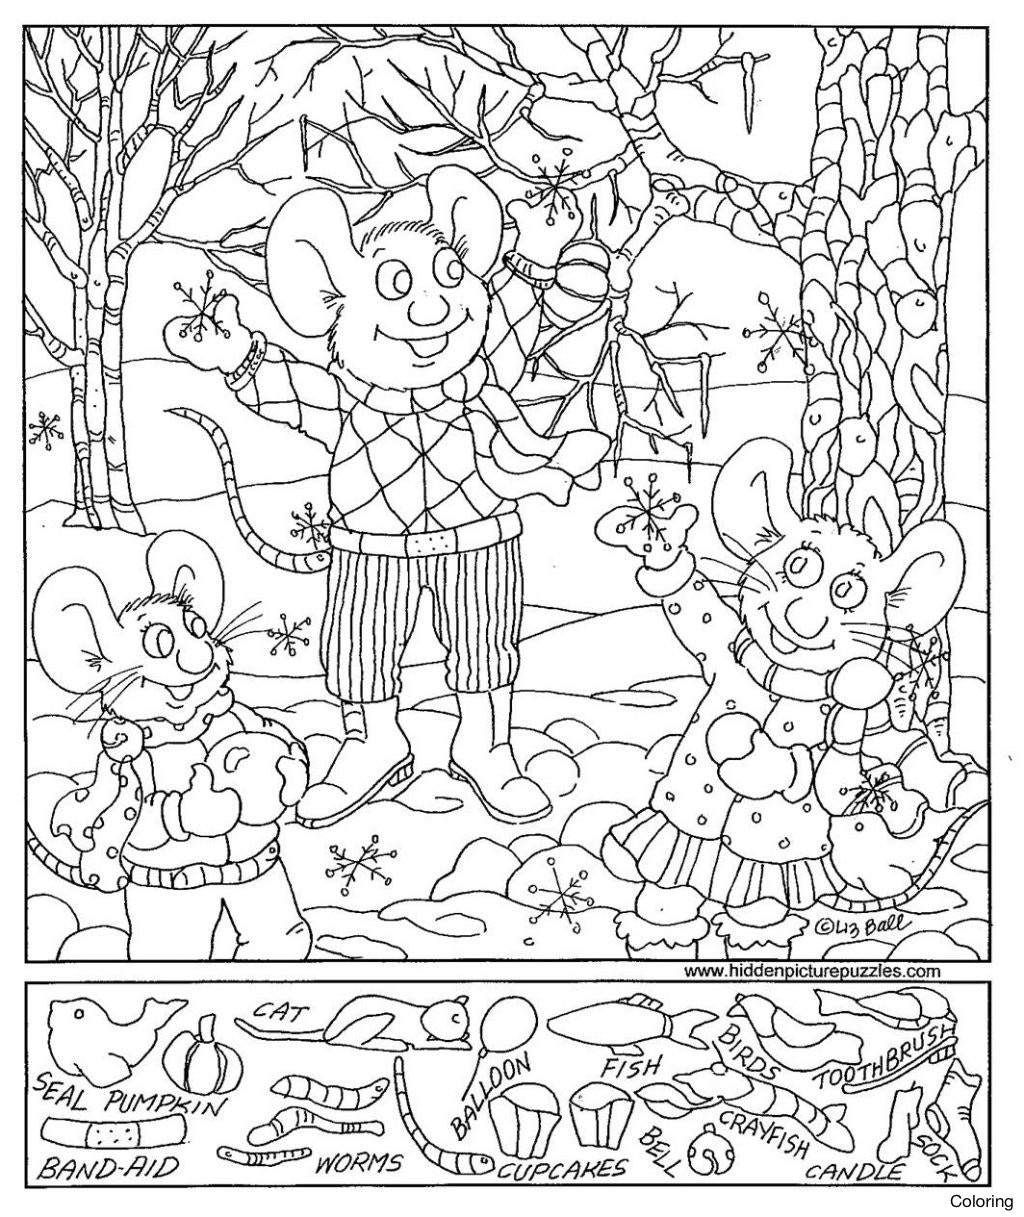 Summer Coloring Pages Pdf Elegant Free Printable Christmas Coloring - Free Printable Hidden Pictures For Adults Pdf